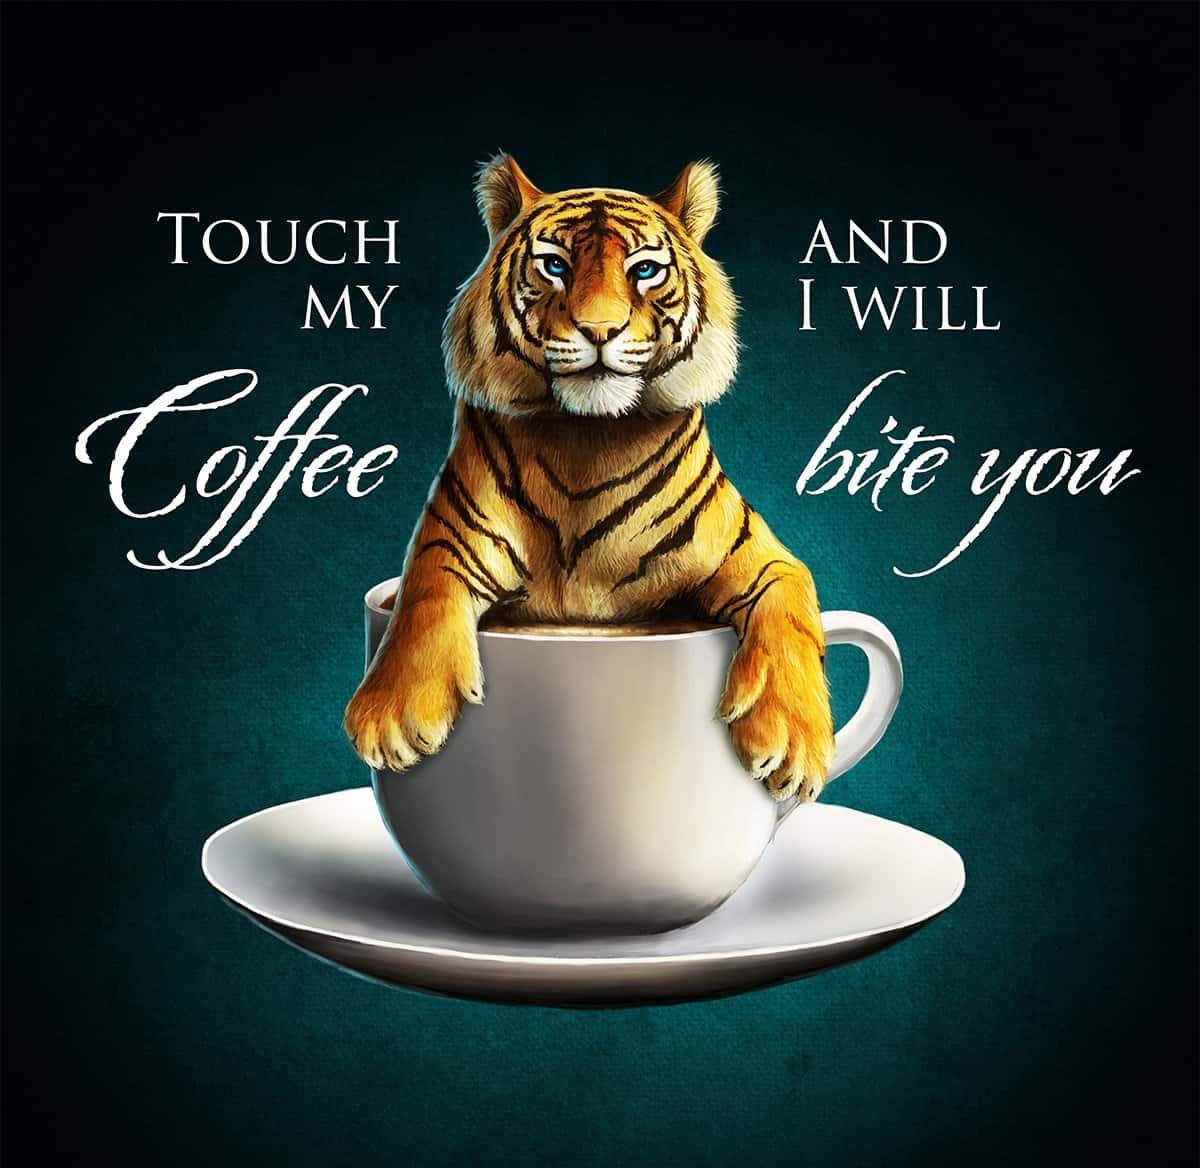 T-Shirt-Design Touch my Coffee and i will bite you, T-Shirt Designer Andrea Baitz, Illustration, Digital Painting, Digitale Illustration, Grafikdesign, Ines Kampf Design, T-Shirt Designer Deutschland